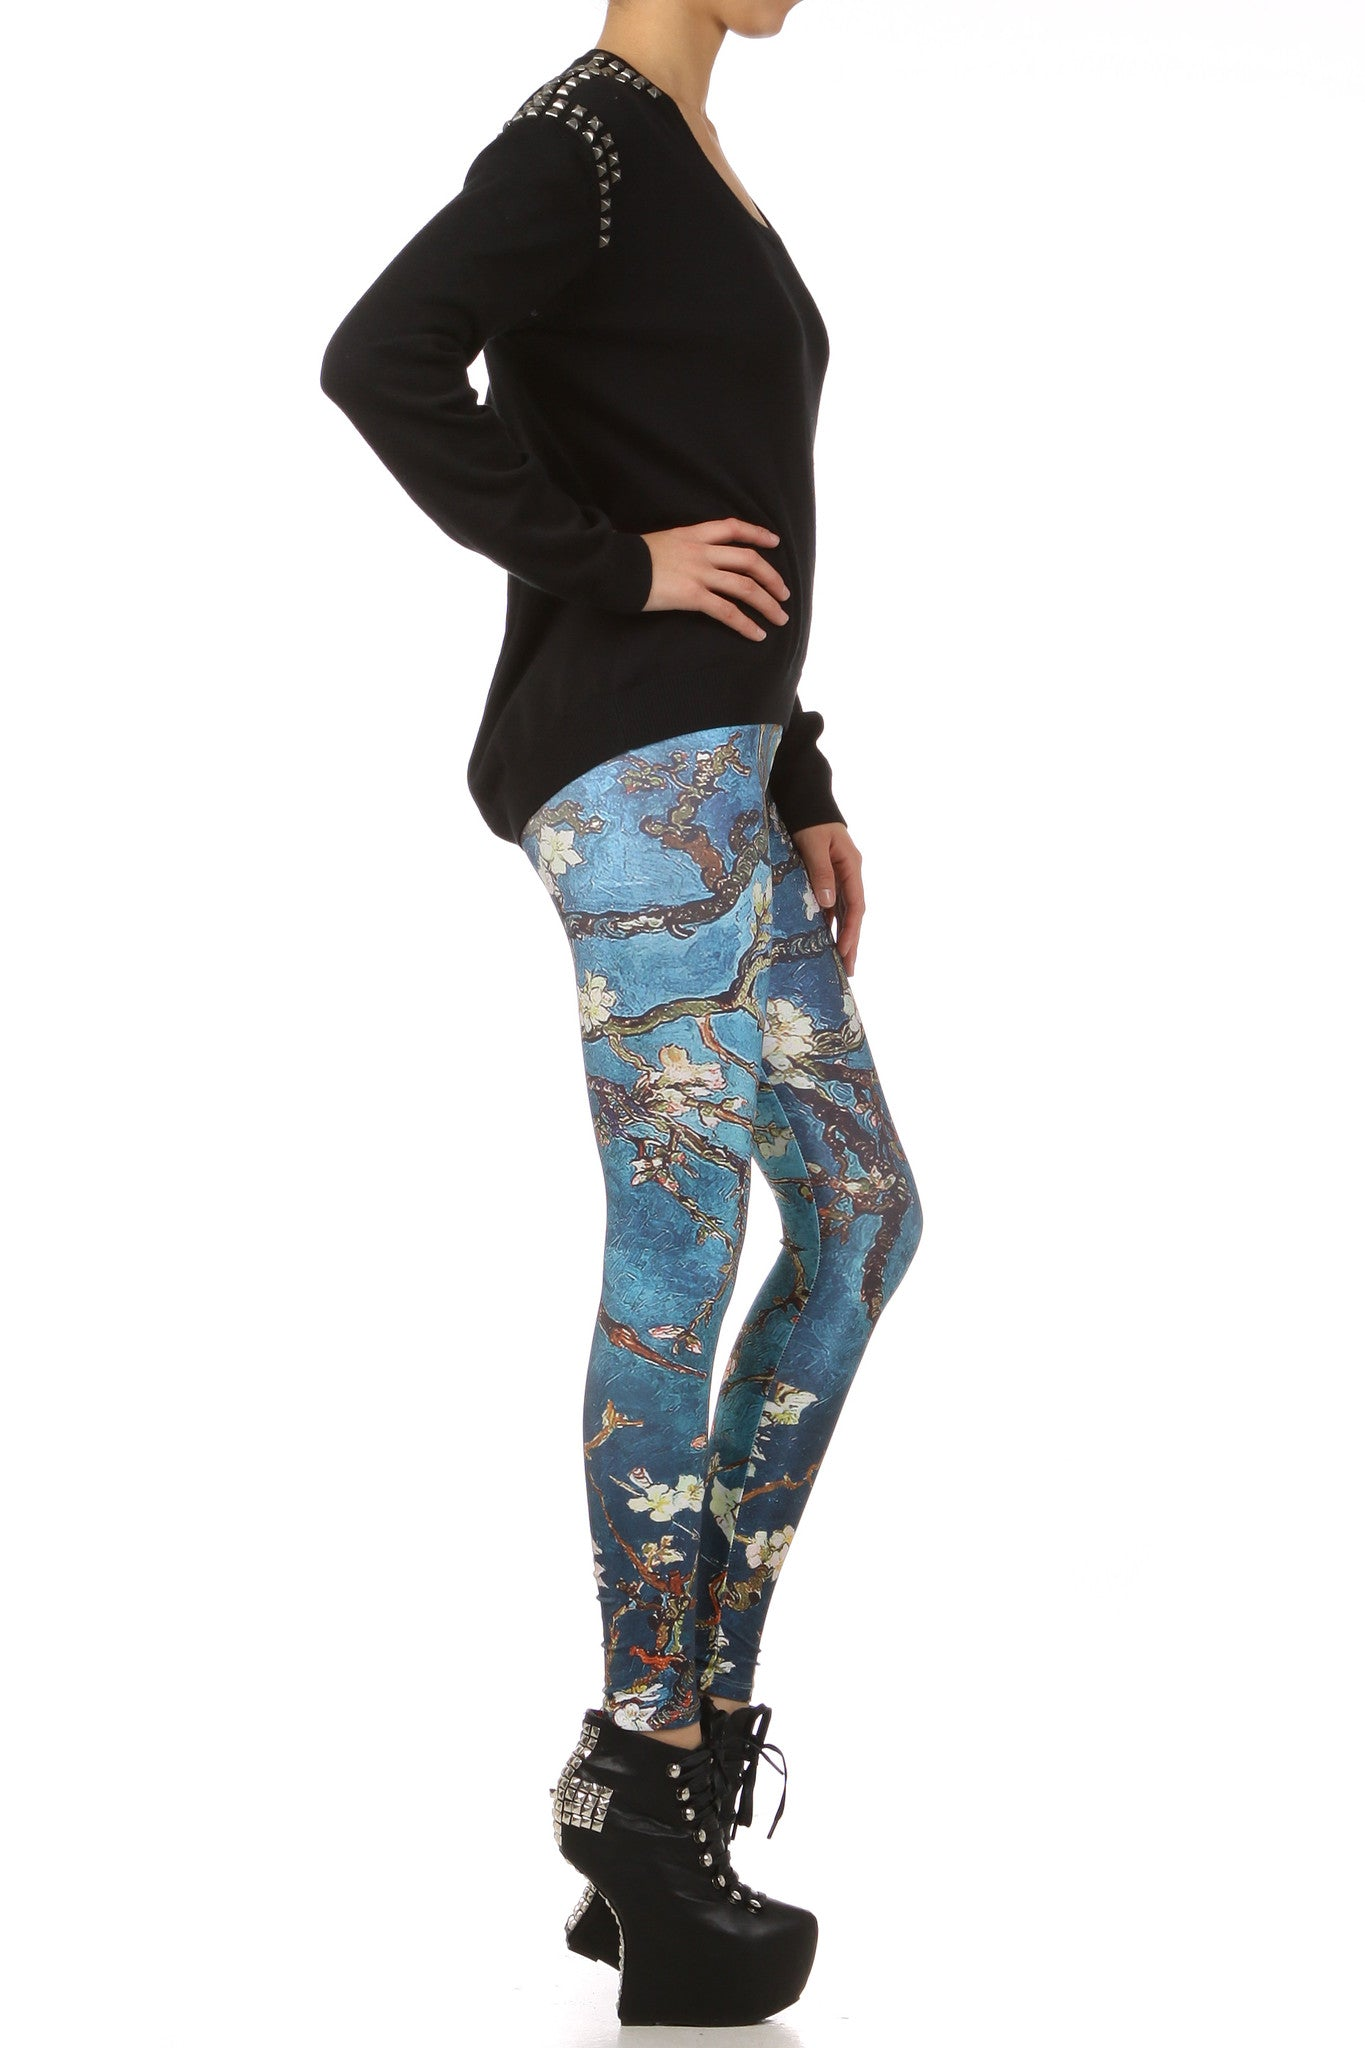 Almond Blossom Leggings - POPRAGEOUS  - 3